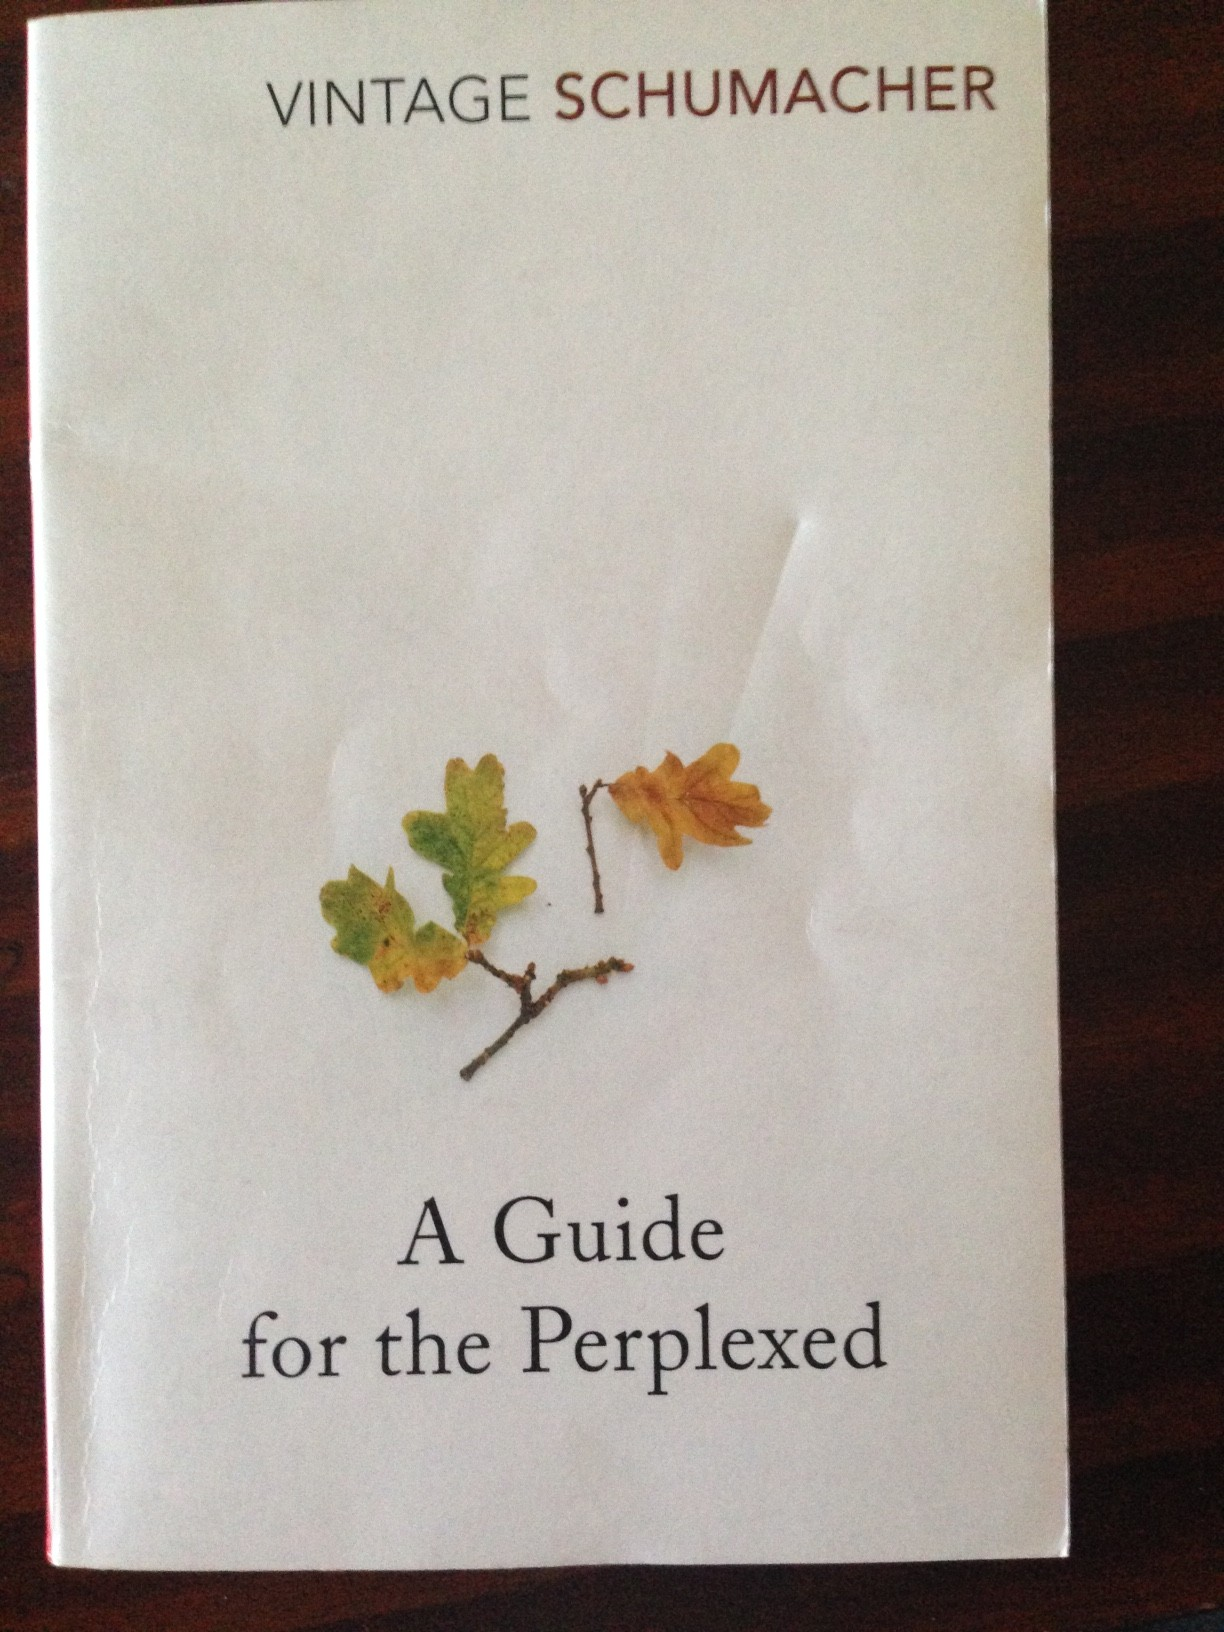 Buy a guide for the perplexed by e f schumacher with free delivery.